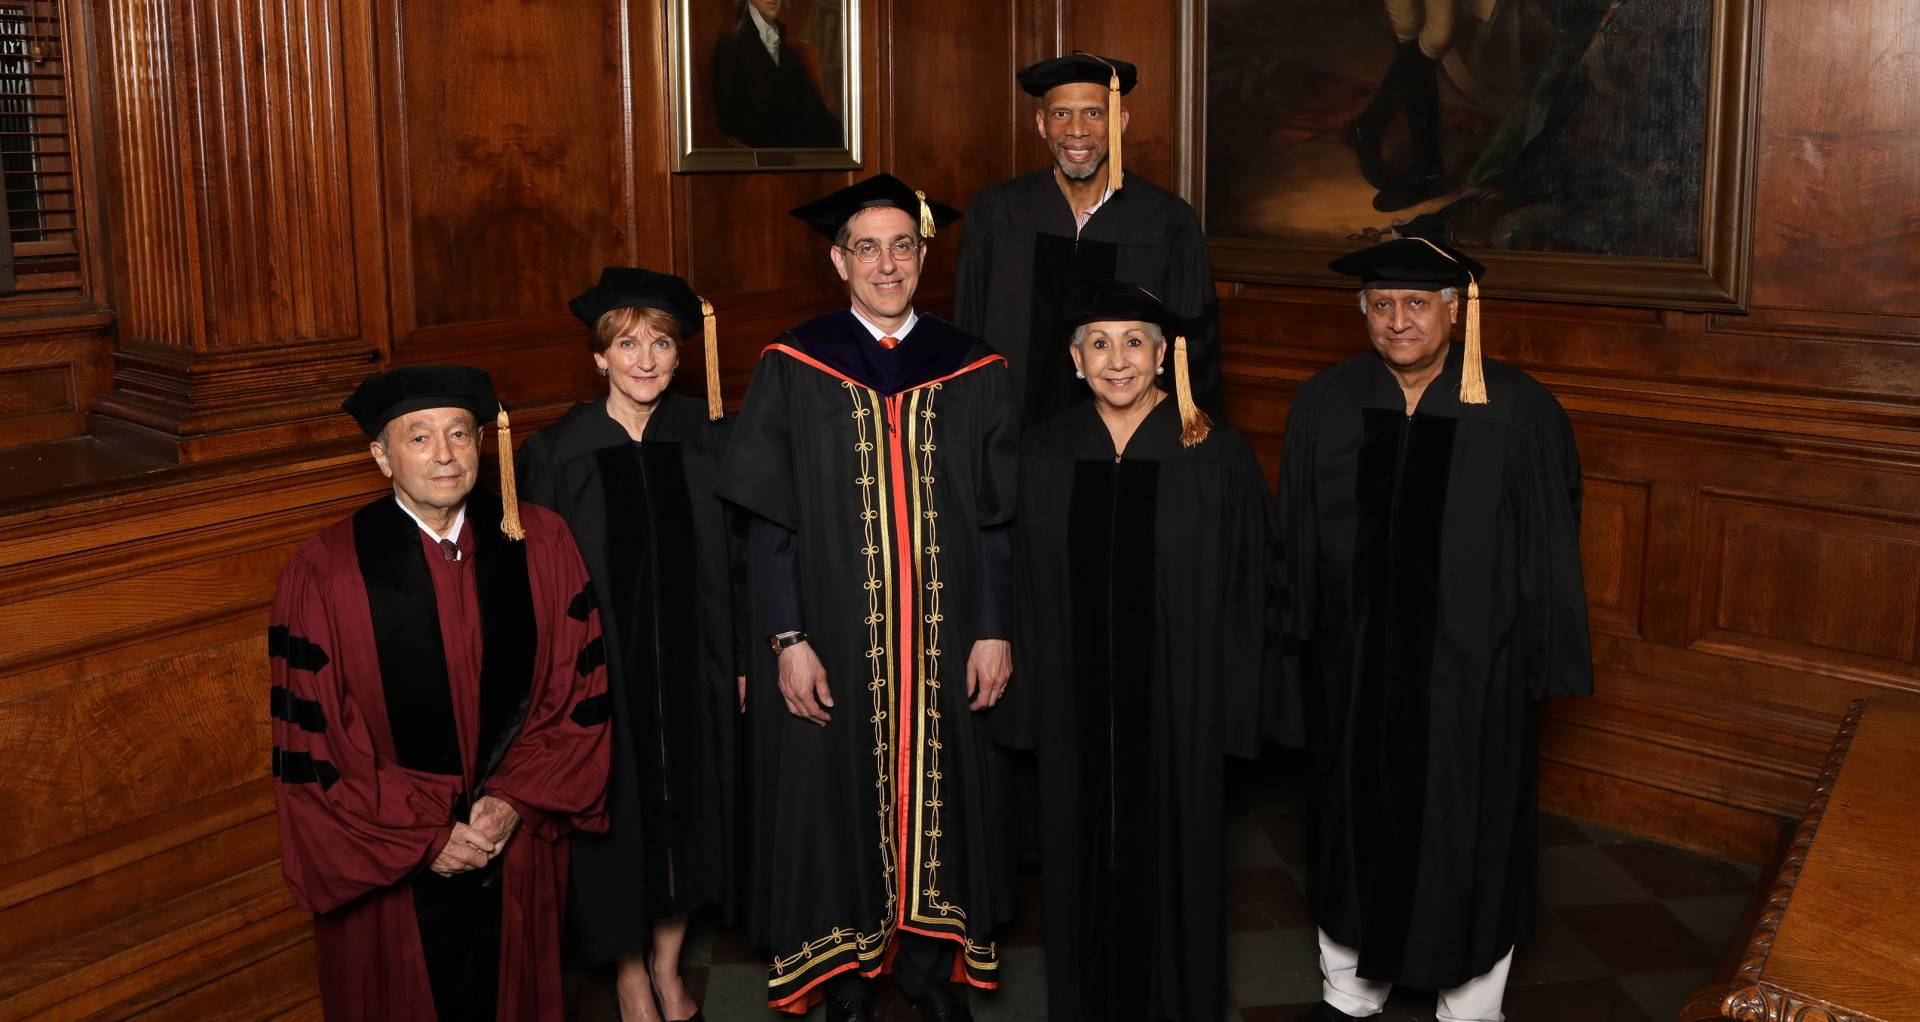 Honorary Degree awardees for 2017